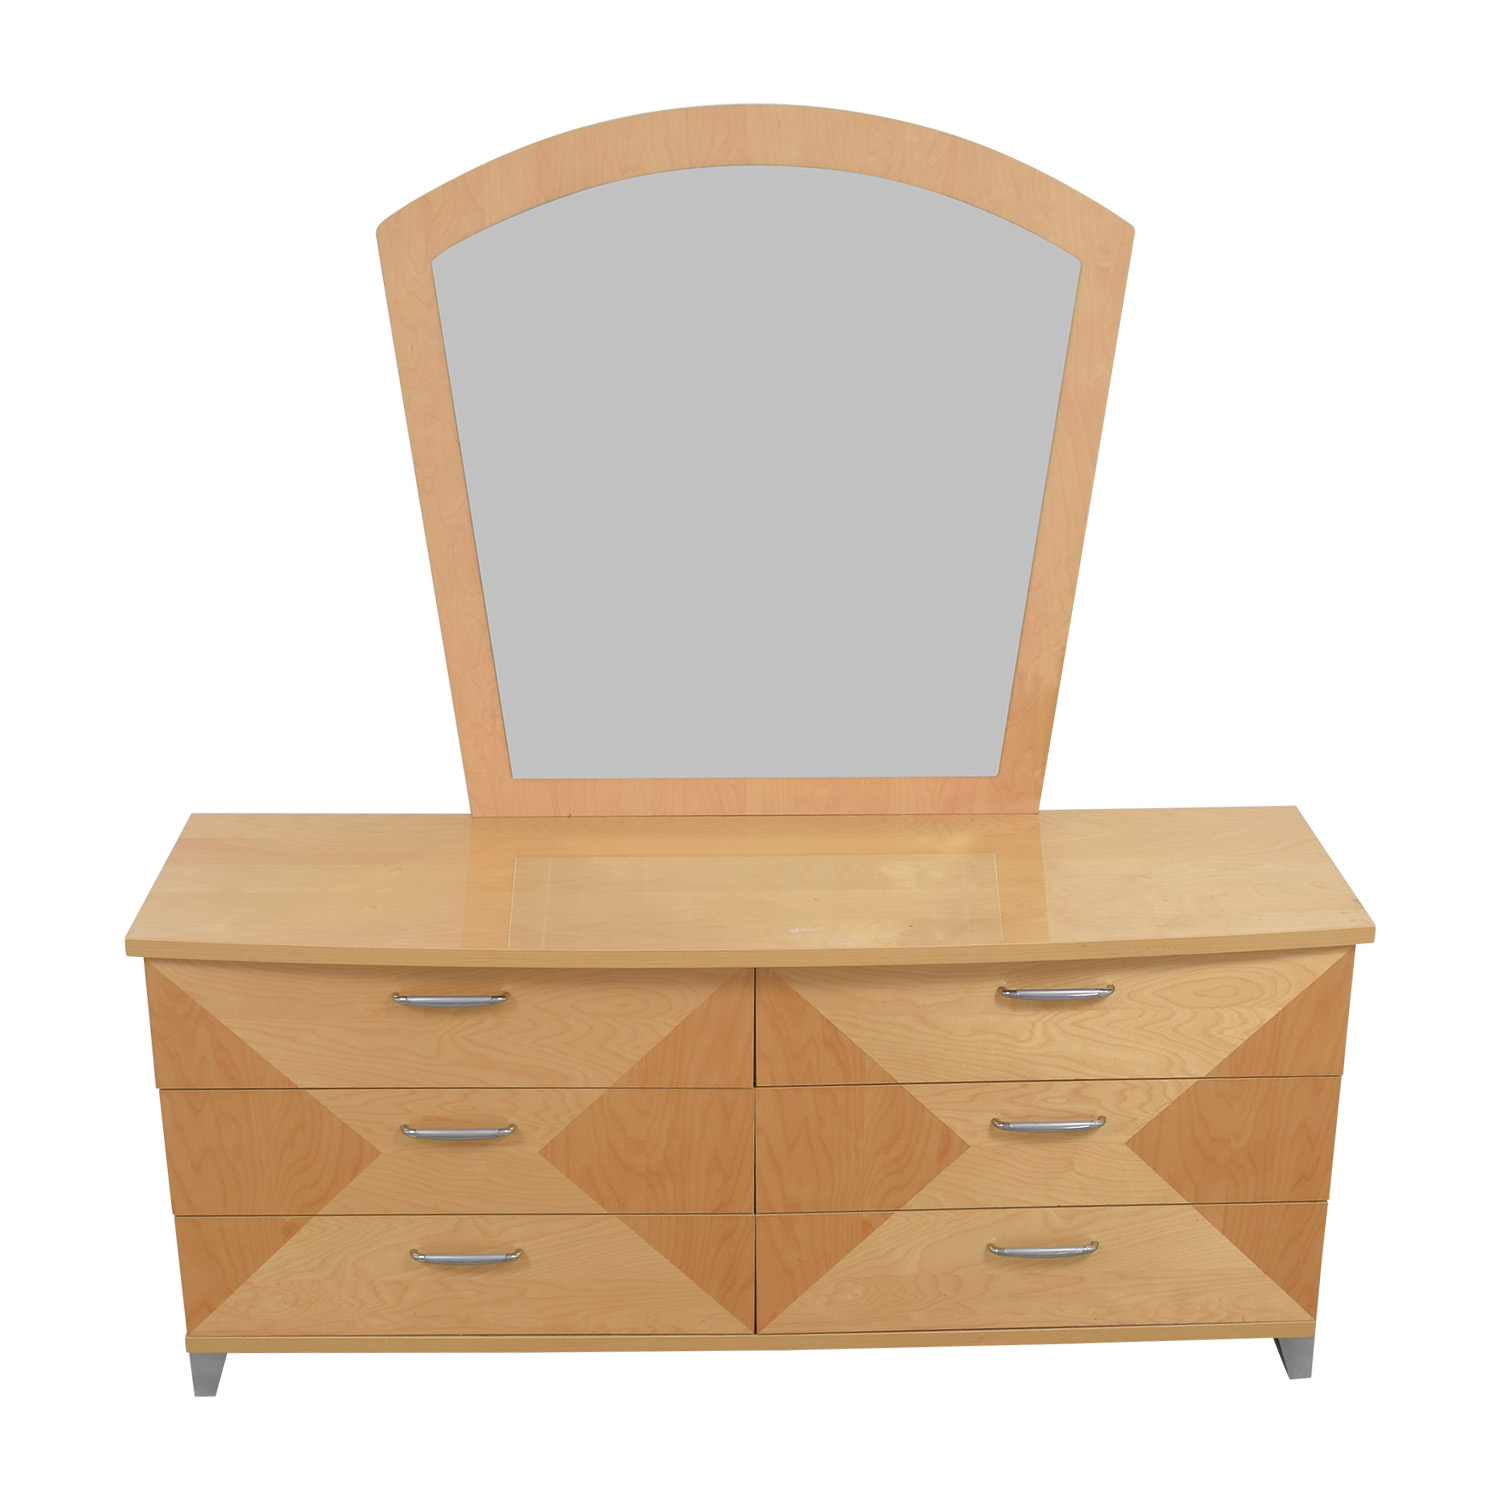 shop Two-Toned Natural Bedroom Dresser with Mirror